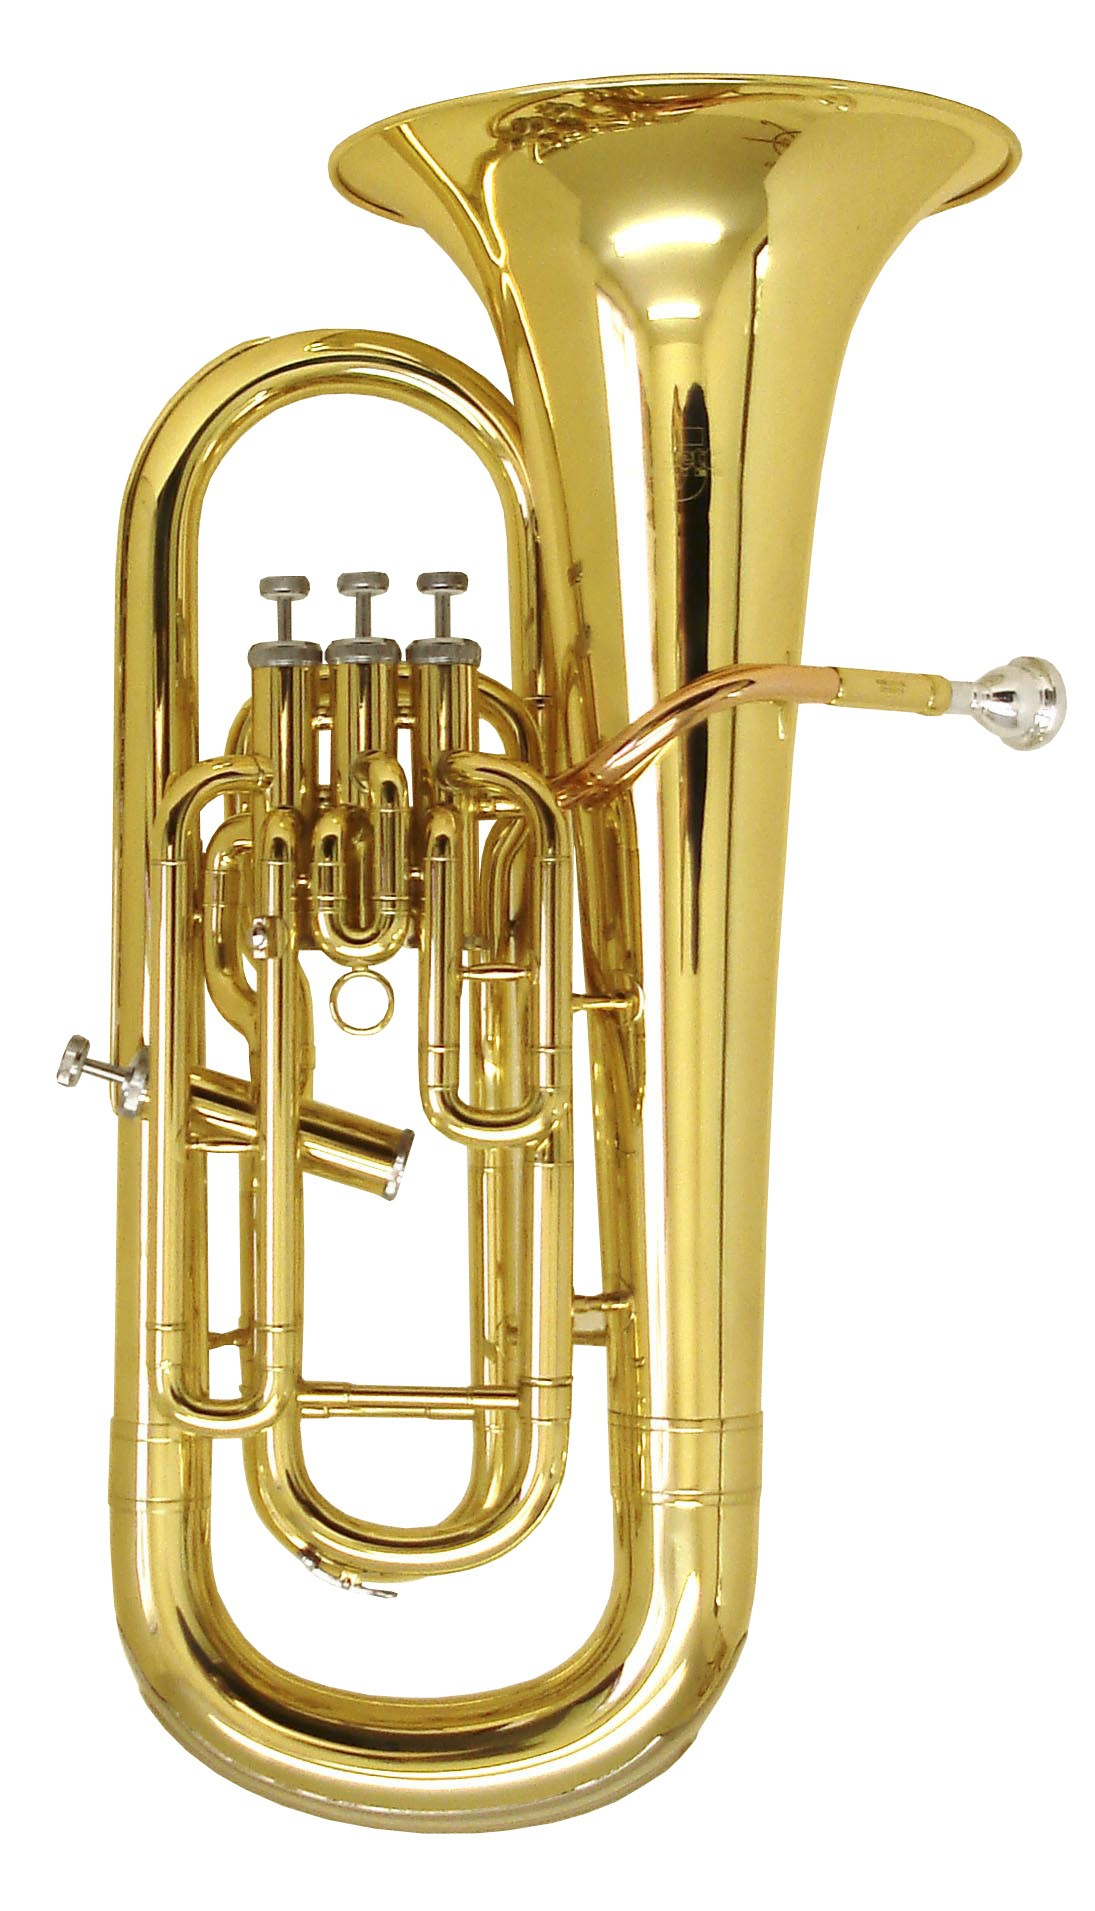 Rosetti Series 5 4-Valve (3+1) Bb Euphonium Outfit - Lacquer